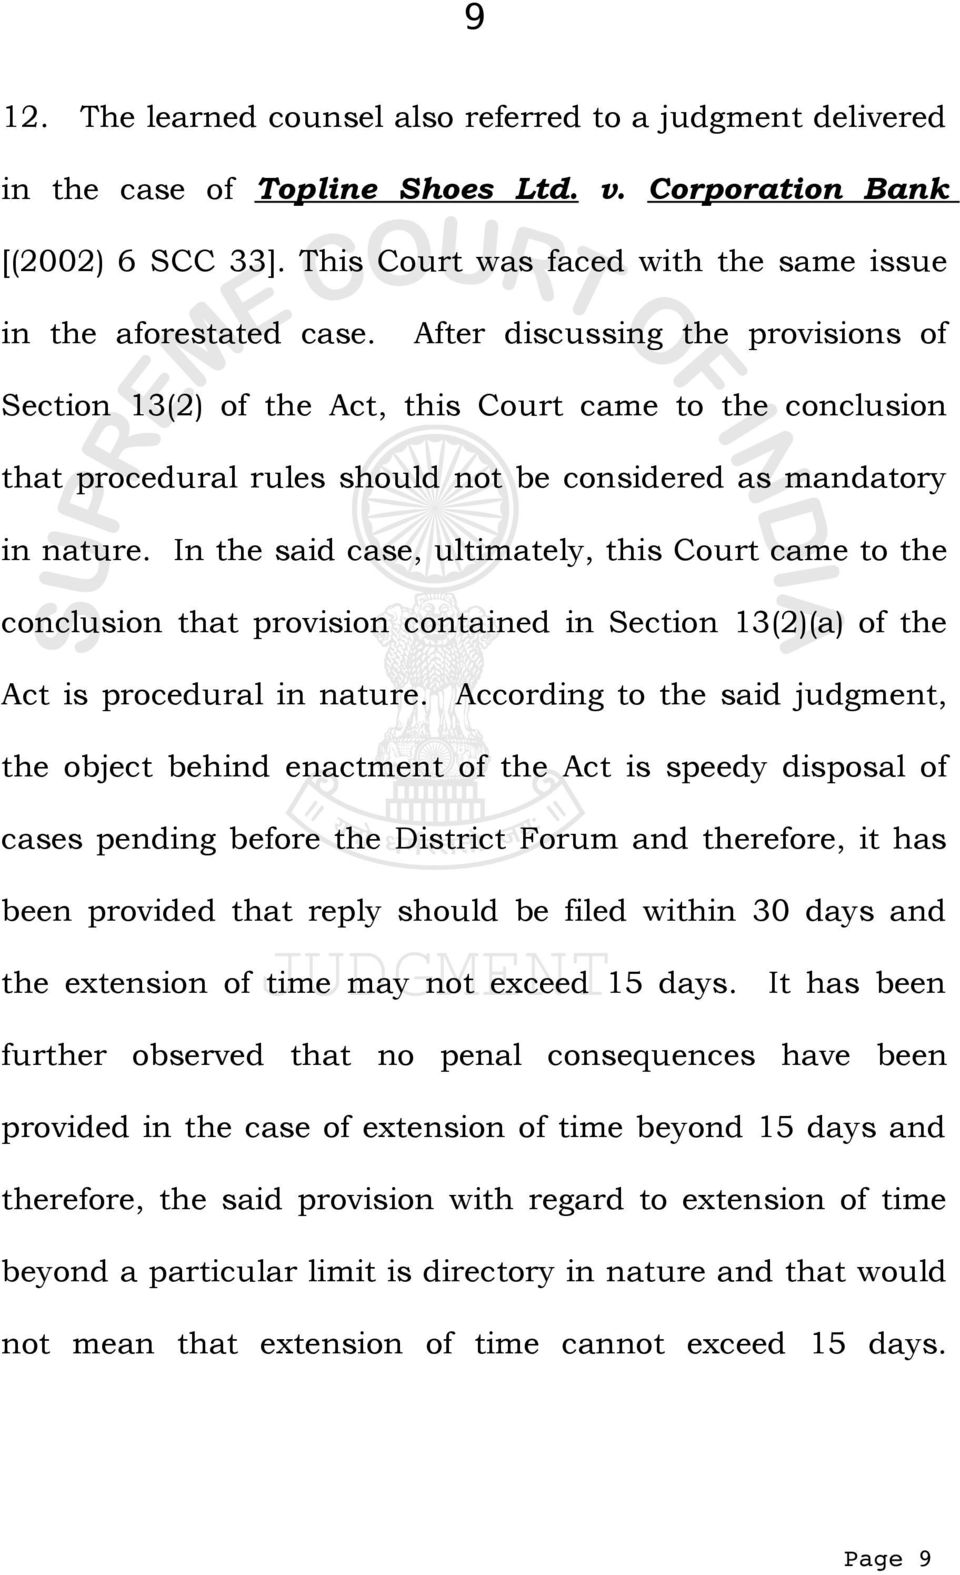 After discussing the provisions of Section 13(2) of the Act, this Court came to the conclusion that procedural rules should not be considered as mandatory in nature.